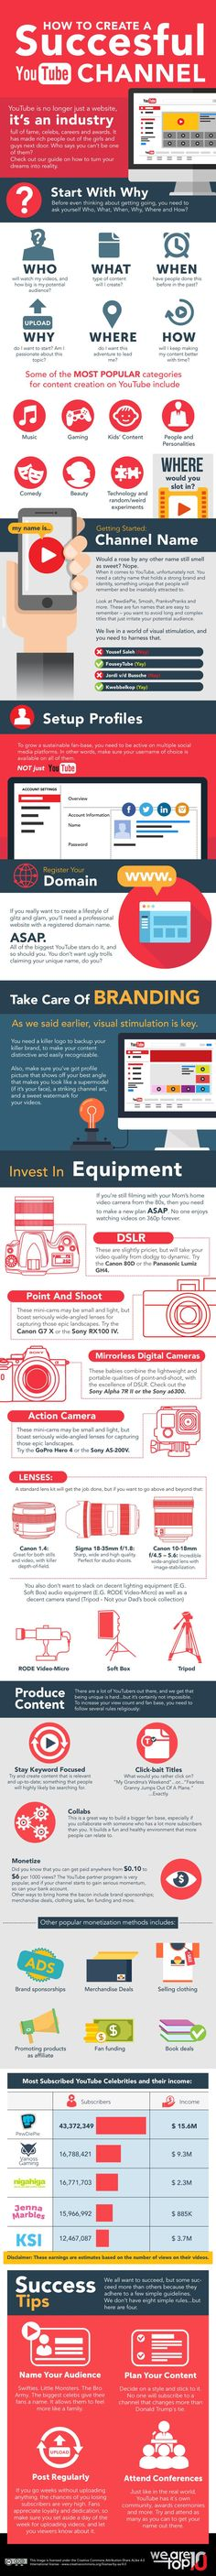 How to Create a Successful YouTube Channel [Infographic] - @redwebdesign